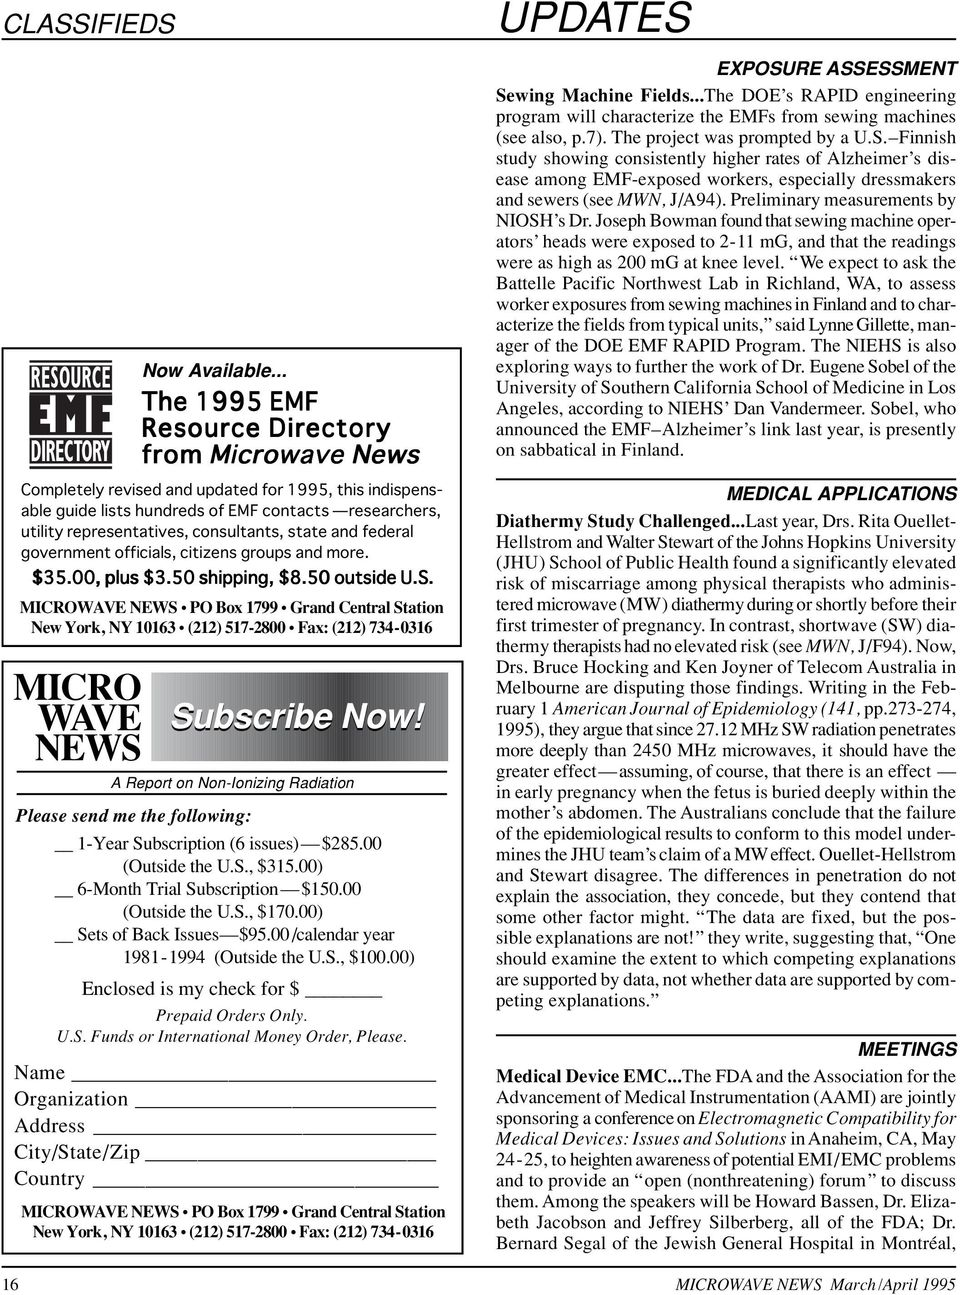 A Report on Non-Ionizing Radiation Please send me the following: The 1995 EMF Resource Directory from Microwave News MICROWAVE NEWS PO Box 1799 Grand Central Station New York, NY 10163 (212) 517-2800